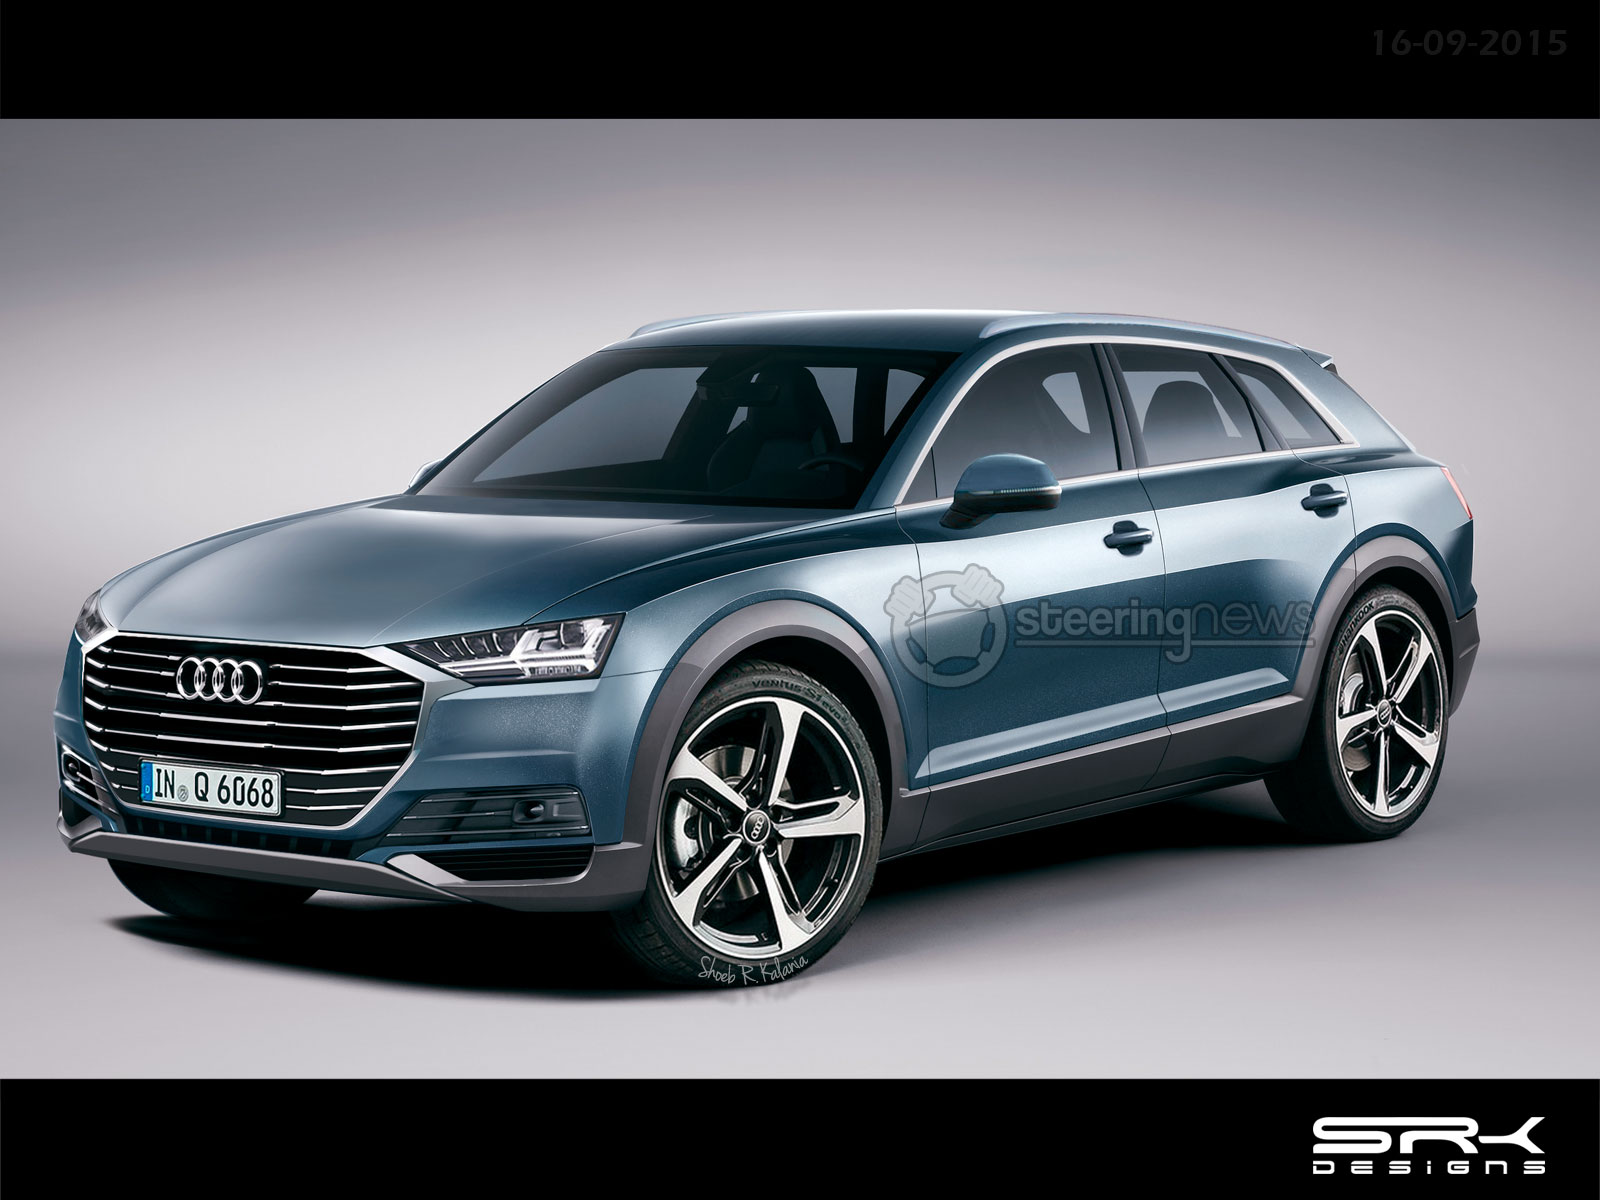 Production Audi Q6 Rendered Based on the e-tron quattro ...